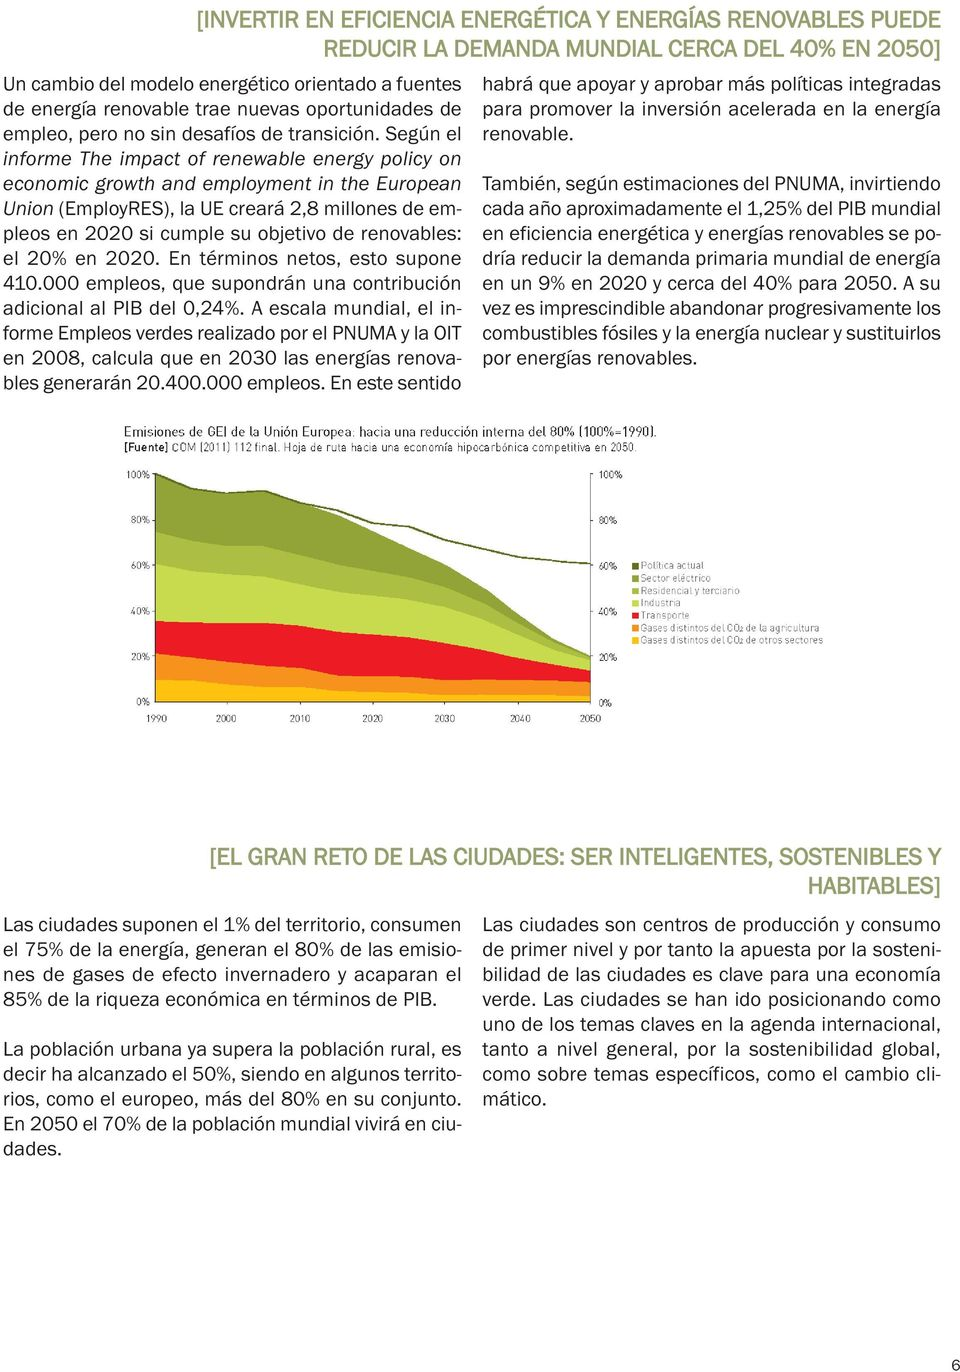 Según el informe The impact of renewable energy policy on economic growth and employment in the European Union (EmployRES), la UE creará 2,8 millones de empleos en 2020 si cumple su objetivo de